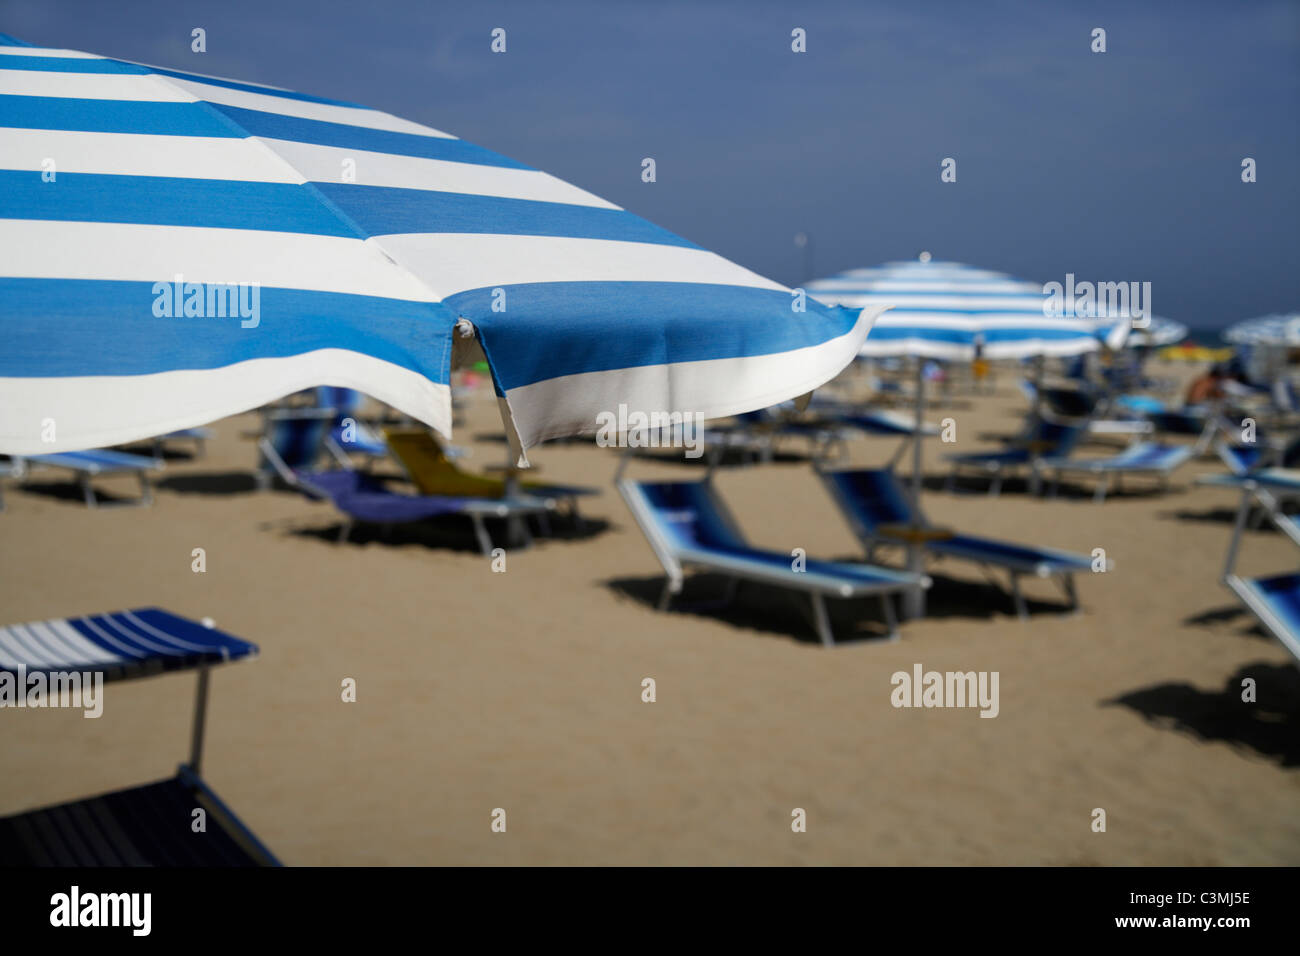 Itlay, Adria, Rimini, Sunshades and chairs on beach - Stock Image